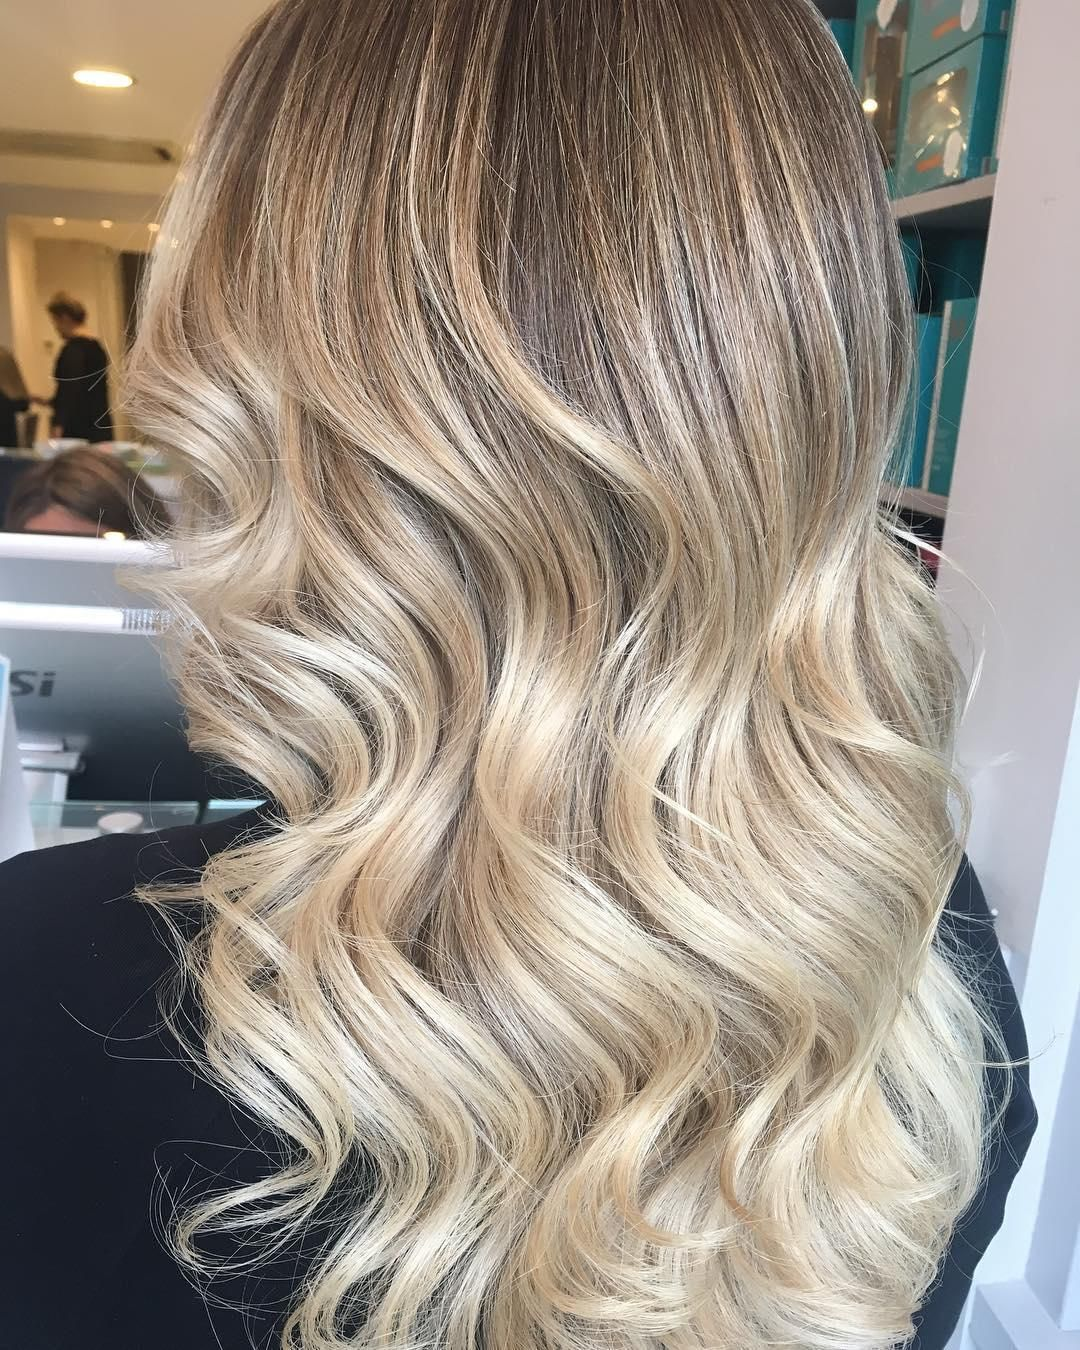 The Latest Blonde Hair Color Guide 54 Blonde Hairstyle